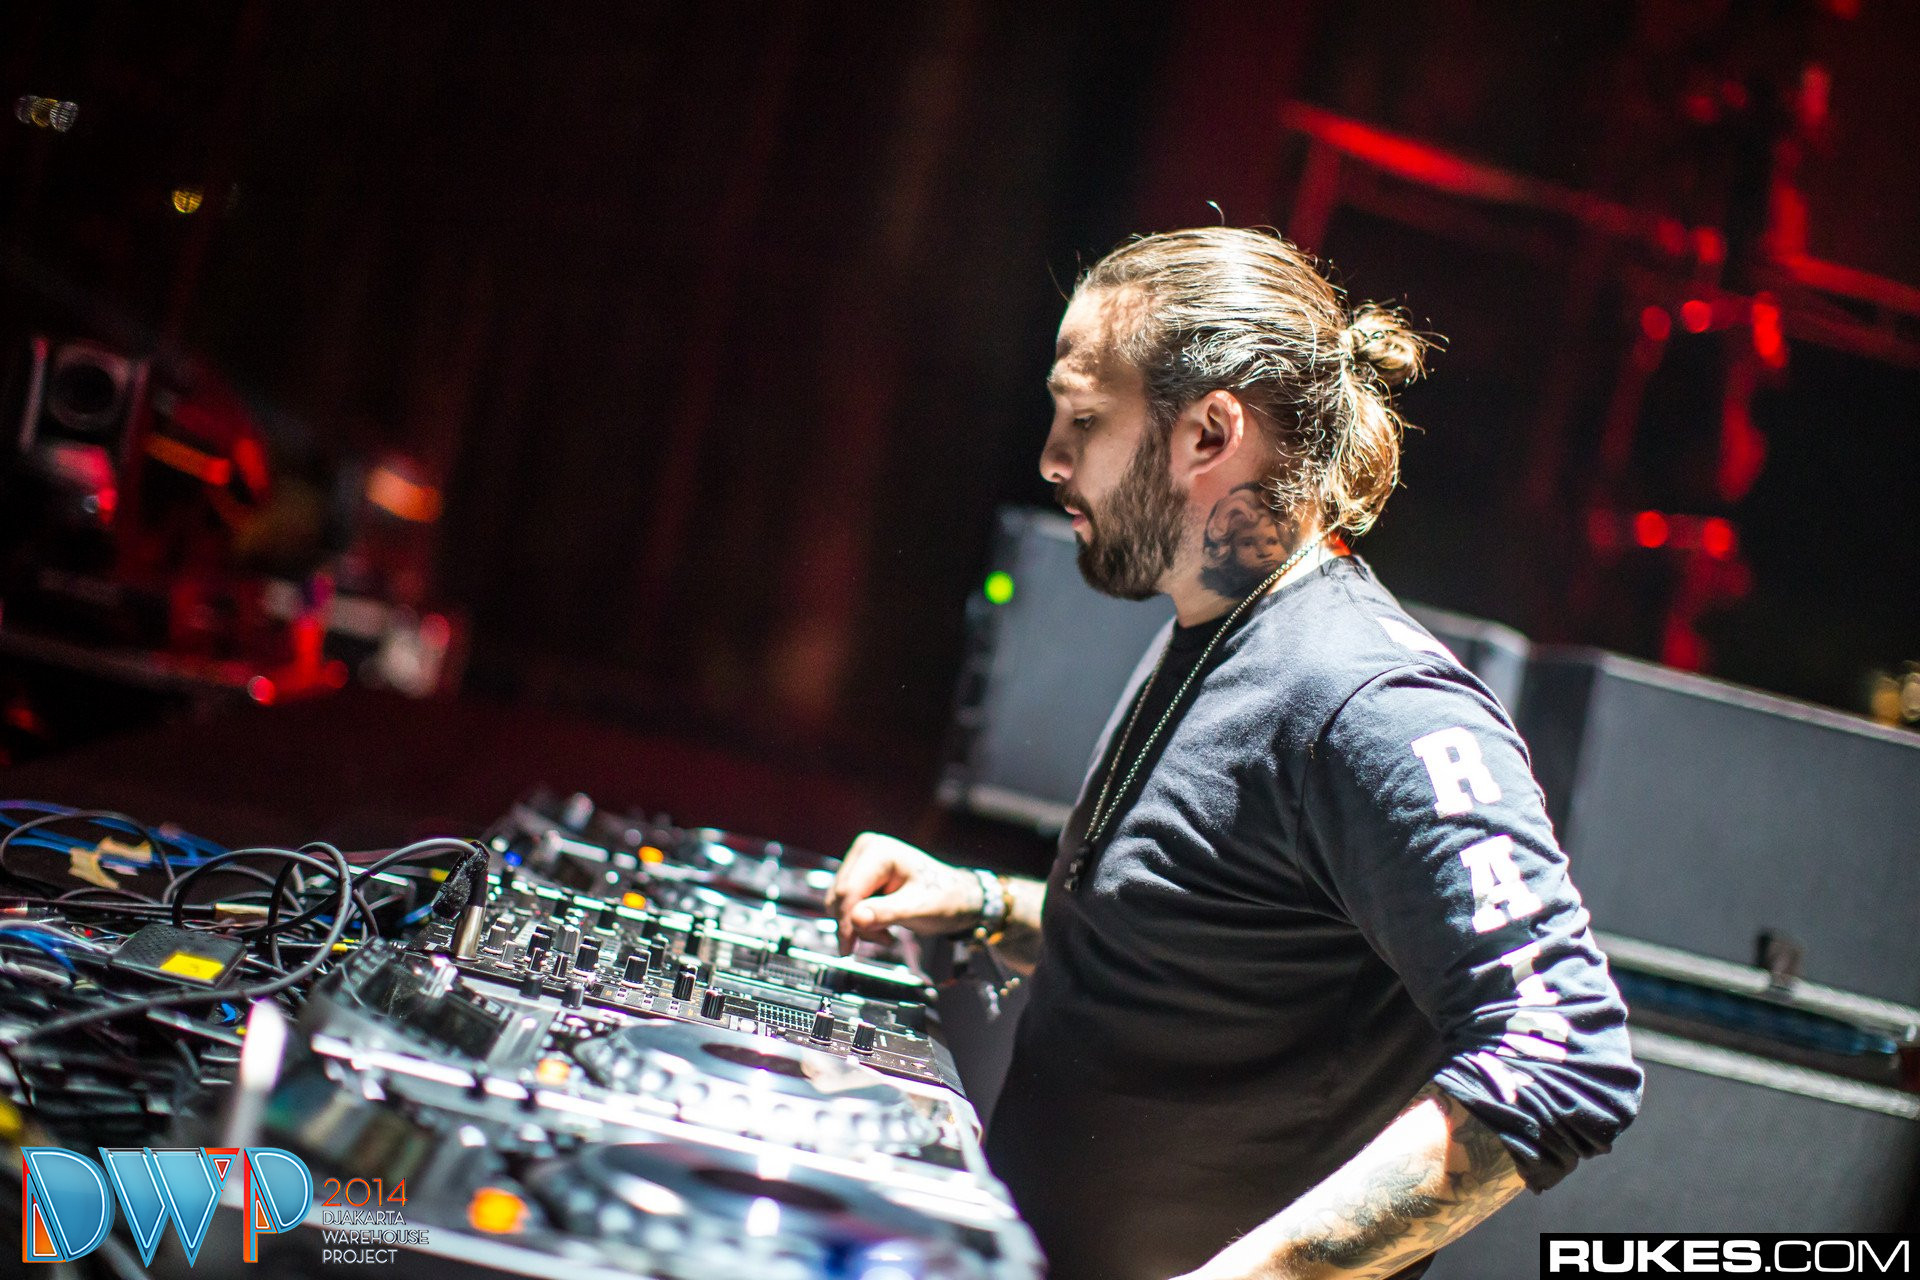 Steve Angello spendet 5000 $ für Lebertransplantation